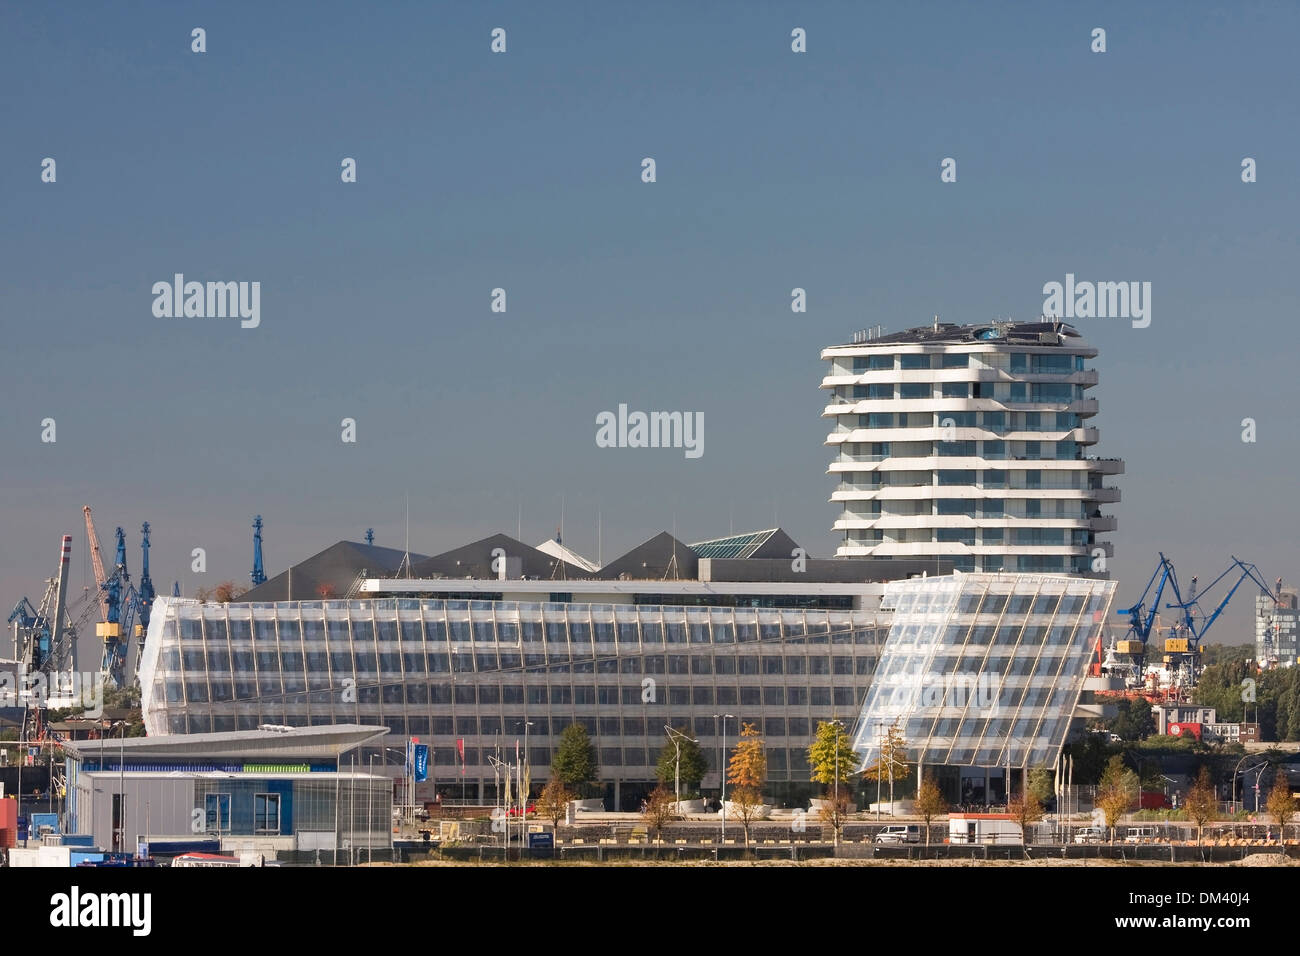 Architecture outside building federal republic German Germany Europe buildings constructions harbour port harbour Stock Photo